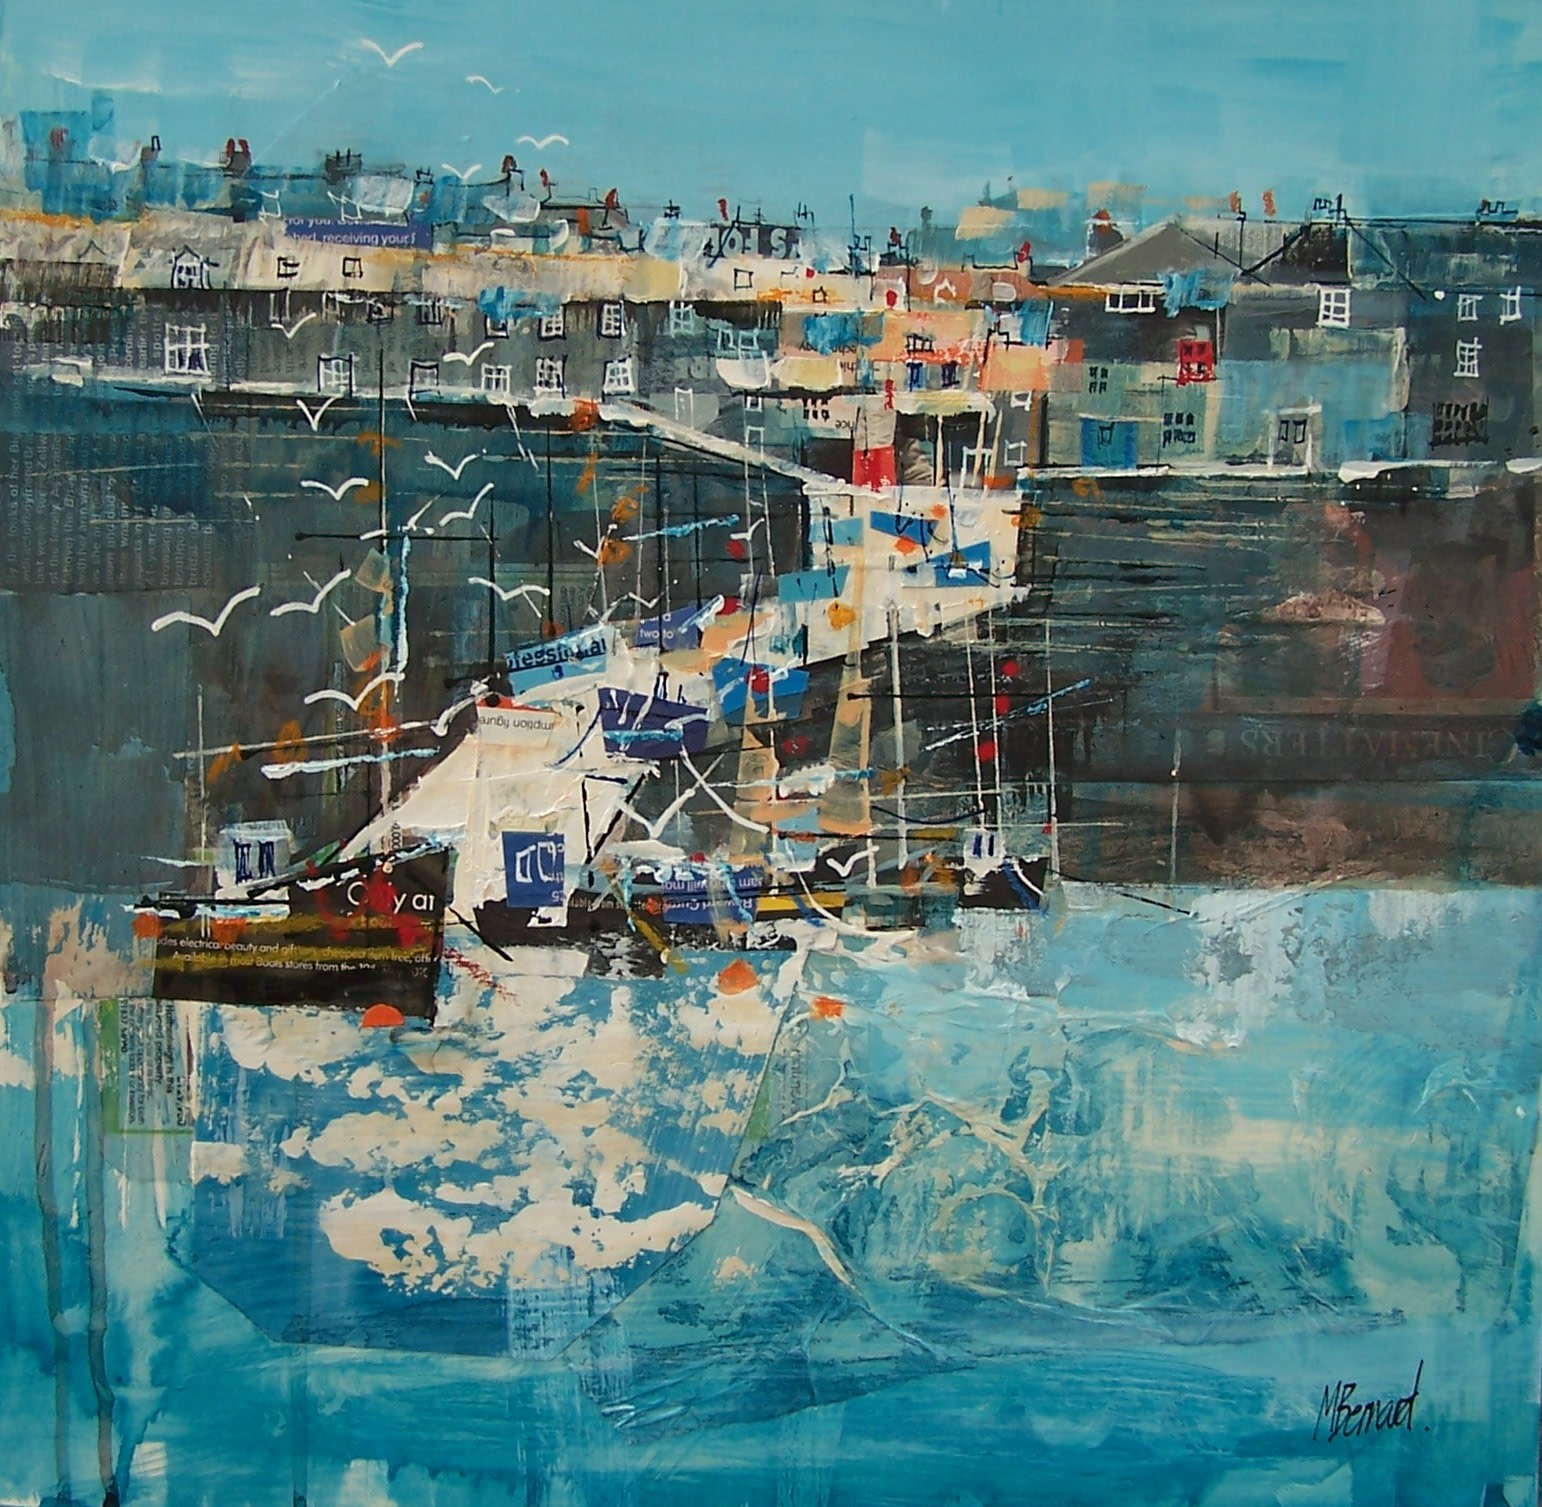 "<span class=""link fancybox-details-link""><a href=""/artists/155-mike-bernard-ri/works/5784-mike-bernard-ri-harbour-slipway-cornwall-2018/"">View Detail Page</a></span><div class=""artist""><strong>Mike Bernard RI</strong></div> <div class=""title""><em>Harbour Slipway, Cornwall</em>, 2018</div> <div class=""signed_and_dated"">signed by the artist</div> <div class=""medium"">Mixed media on canvas</div> <div class=""dimensions"">25.4 x 25.4 cm<br /> 10 x 10 inches</div><div class=""copyright_line"">OwnArt: £ 75 x 10 Months, 0% APR</div>"